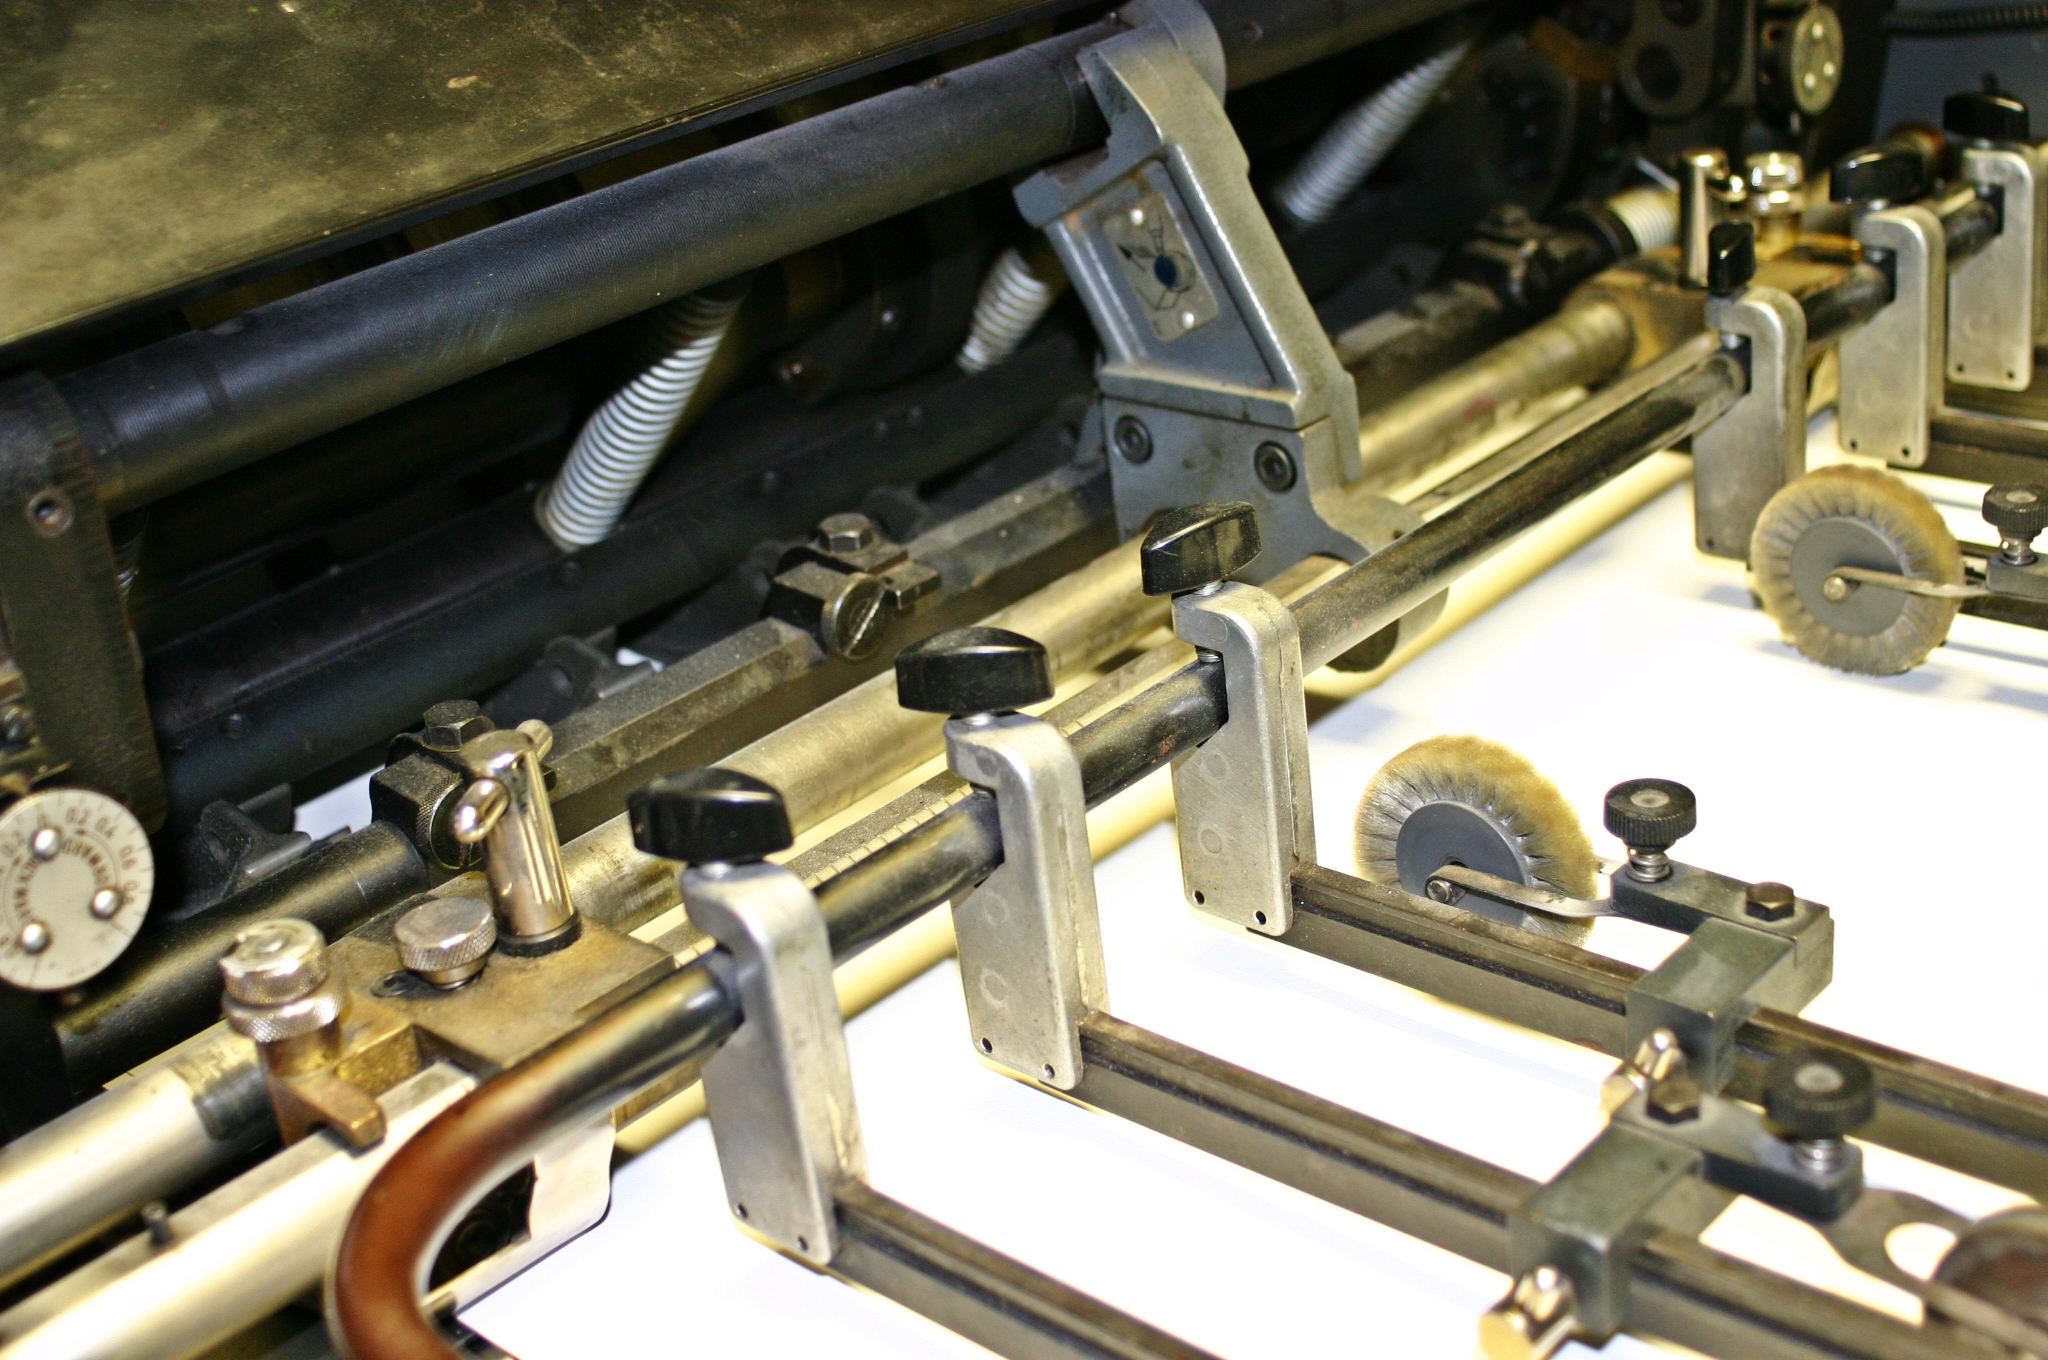 Offset printing machine, Accuracy, Precision, Motion, Offset, HQ Photo